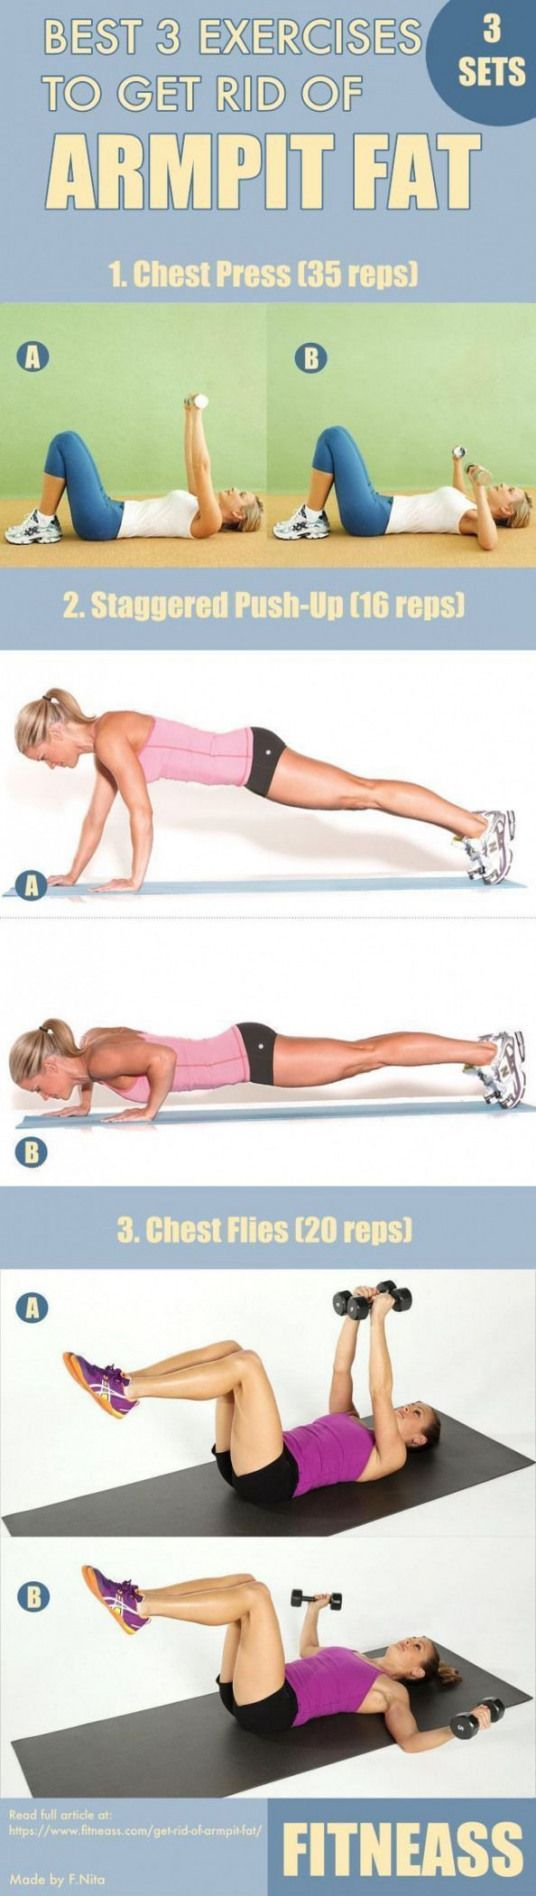 See more here ? www.youtube.com/... Tags: best and fastest way to lose weight - Best 3 Exercises To...